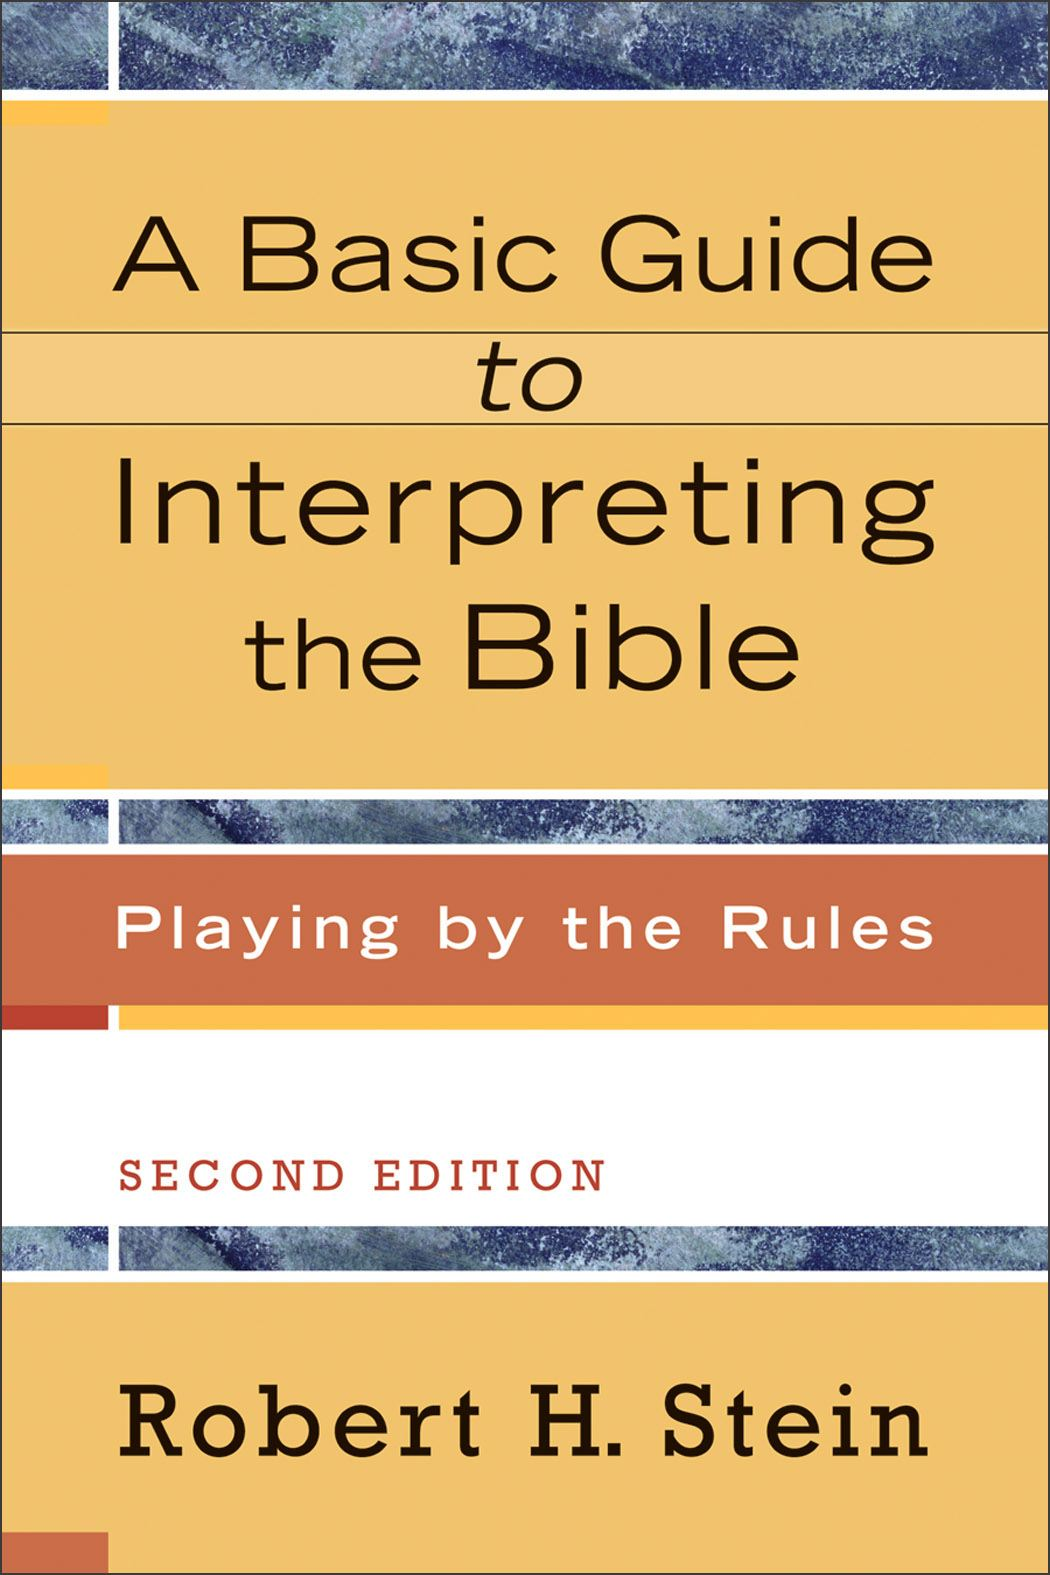 Basic Guide to Interpreting the Bible, A By: Robert H. Stein